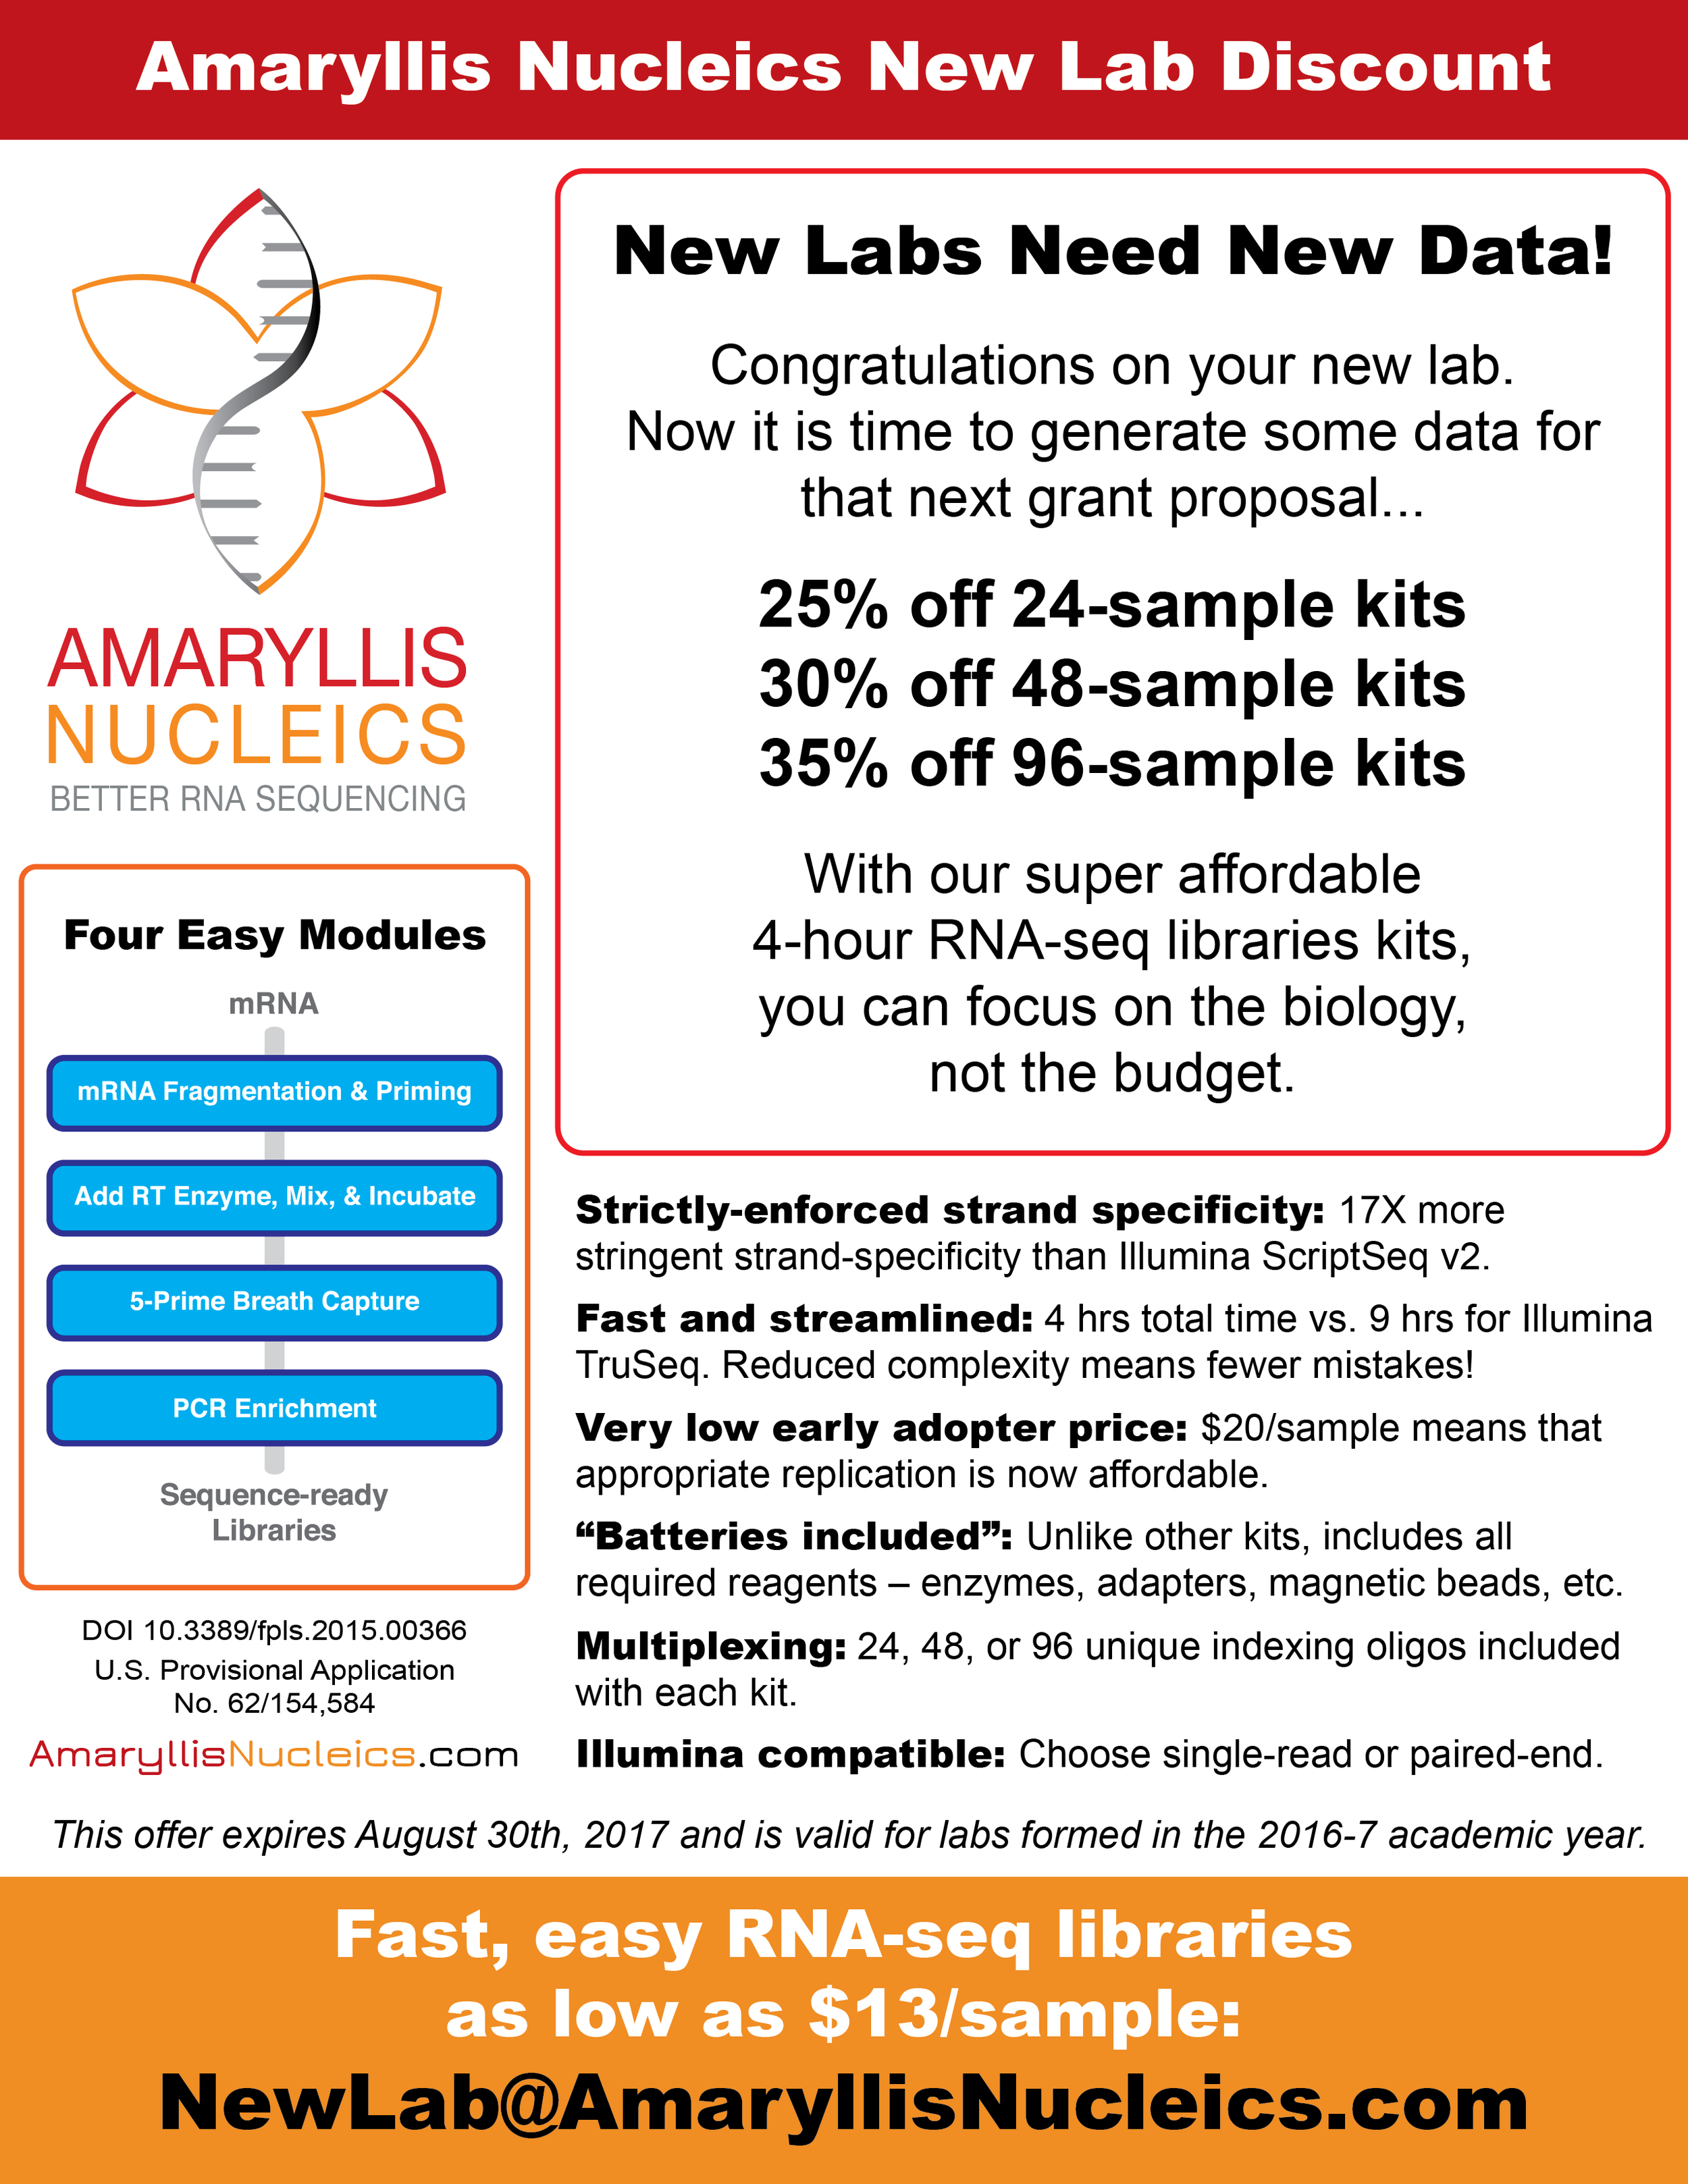 new-lab-discount.2016-2017.png